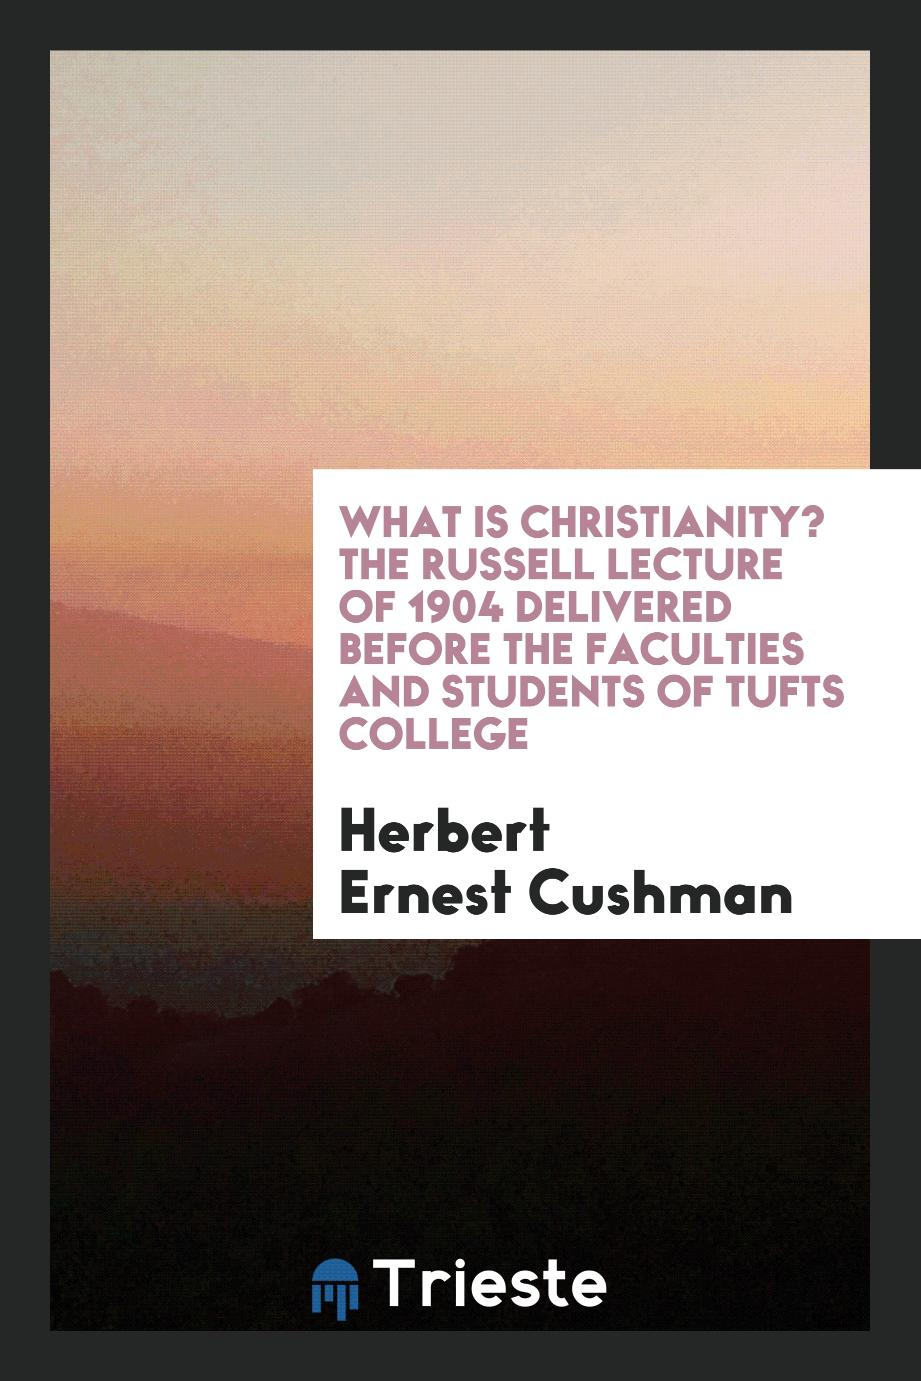 What is Christianity? The Russell lecture of 1904 delivered before the faculties and students of Tufts College